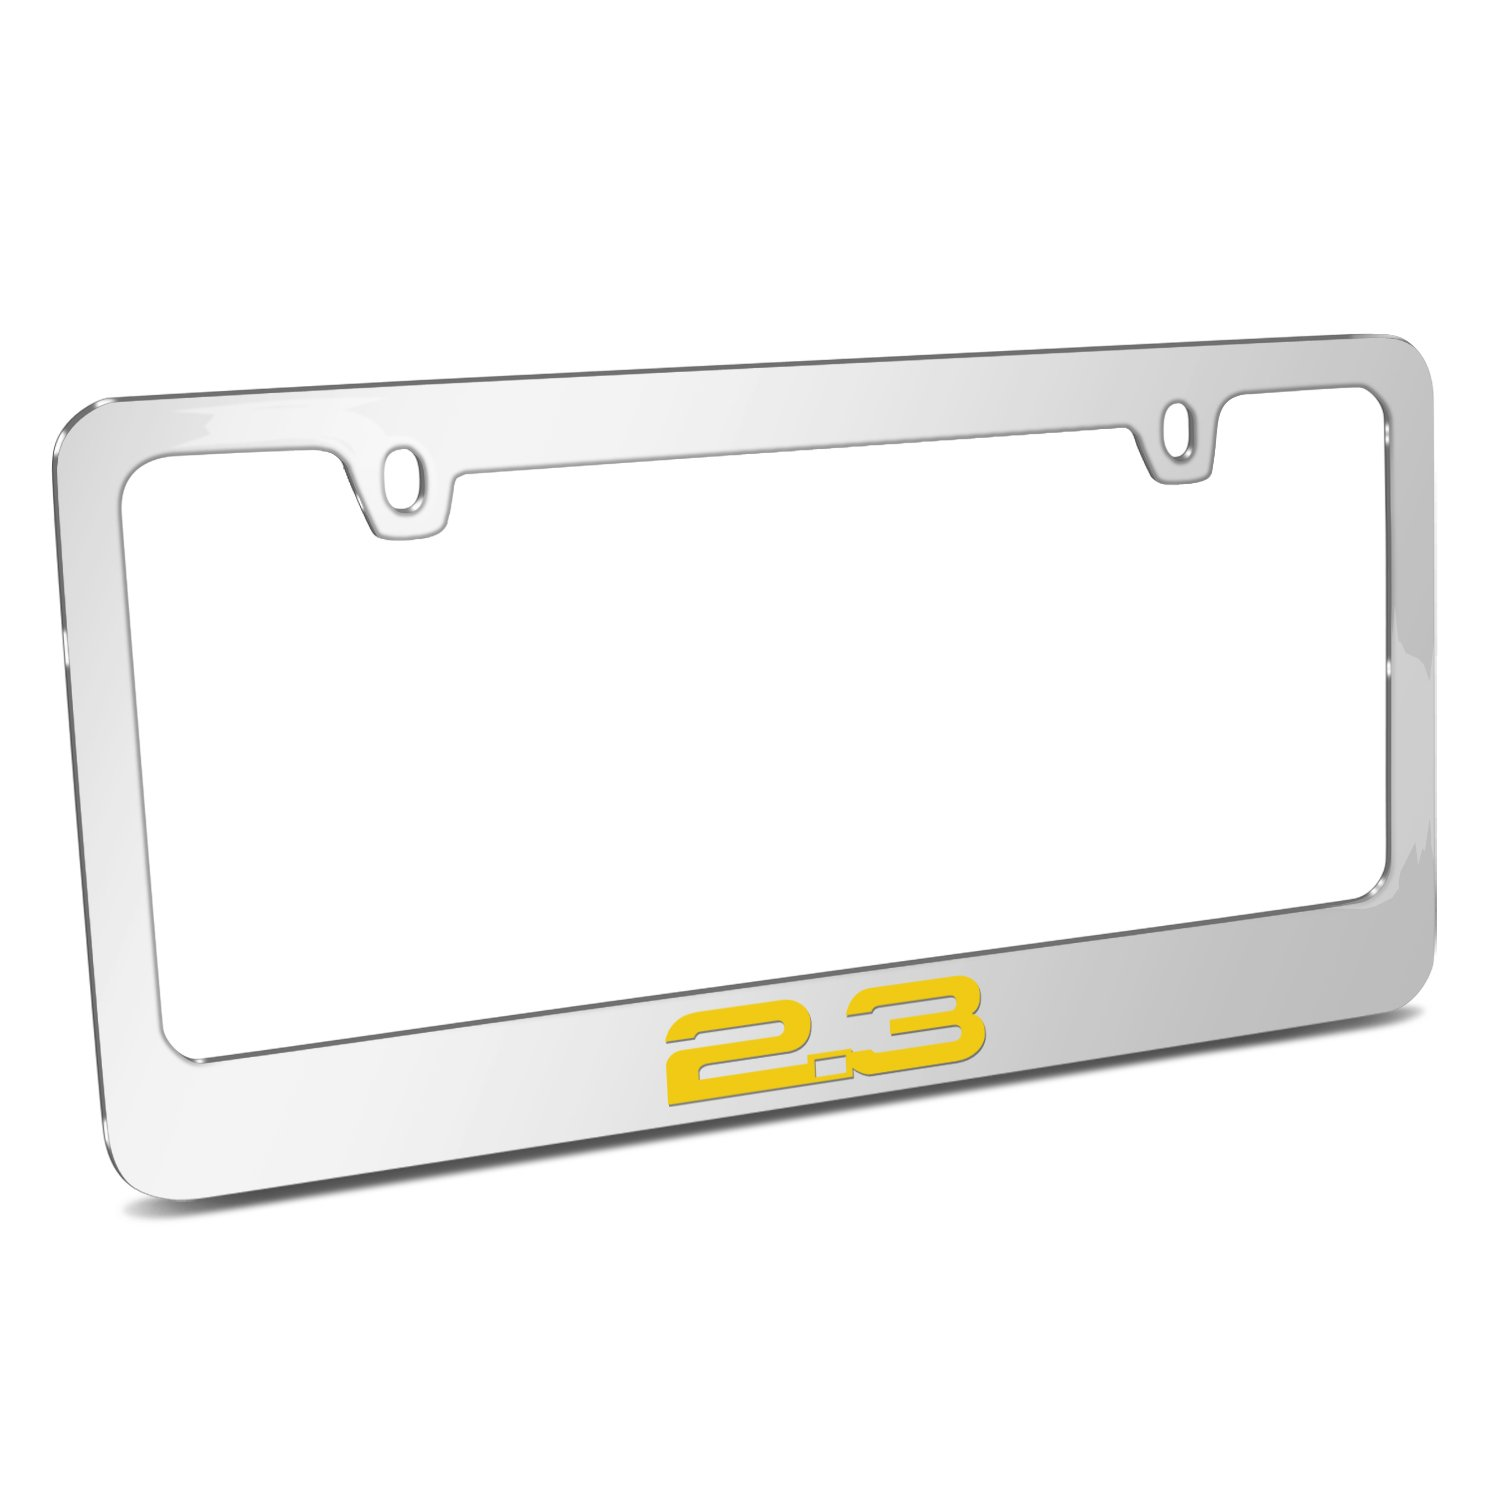 Ford Mustang 2.3L Eco-Boost in Yellow Mirror Chrome Metal License Plate Frame by iPick Image Official Licensed Product Made in the USA